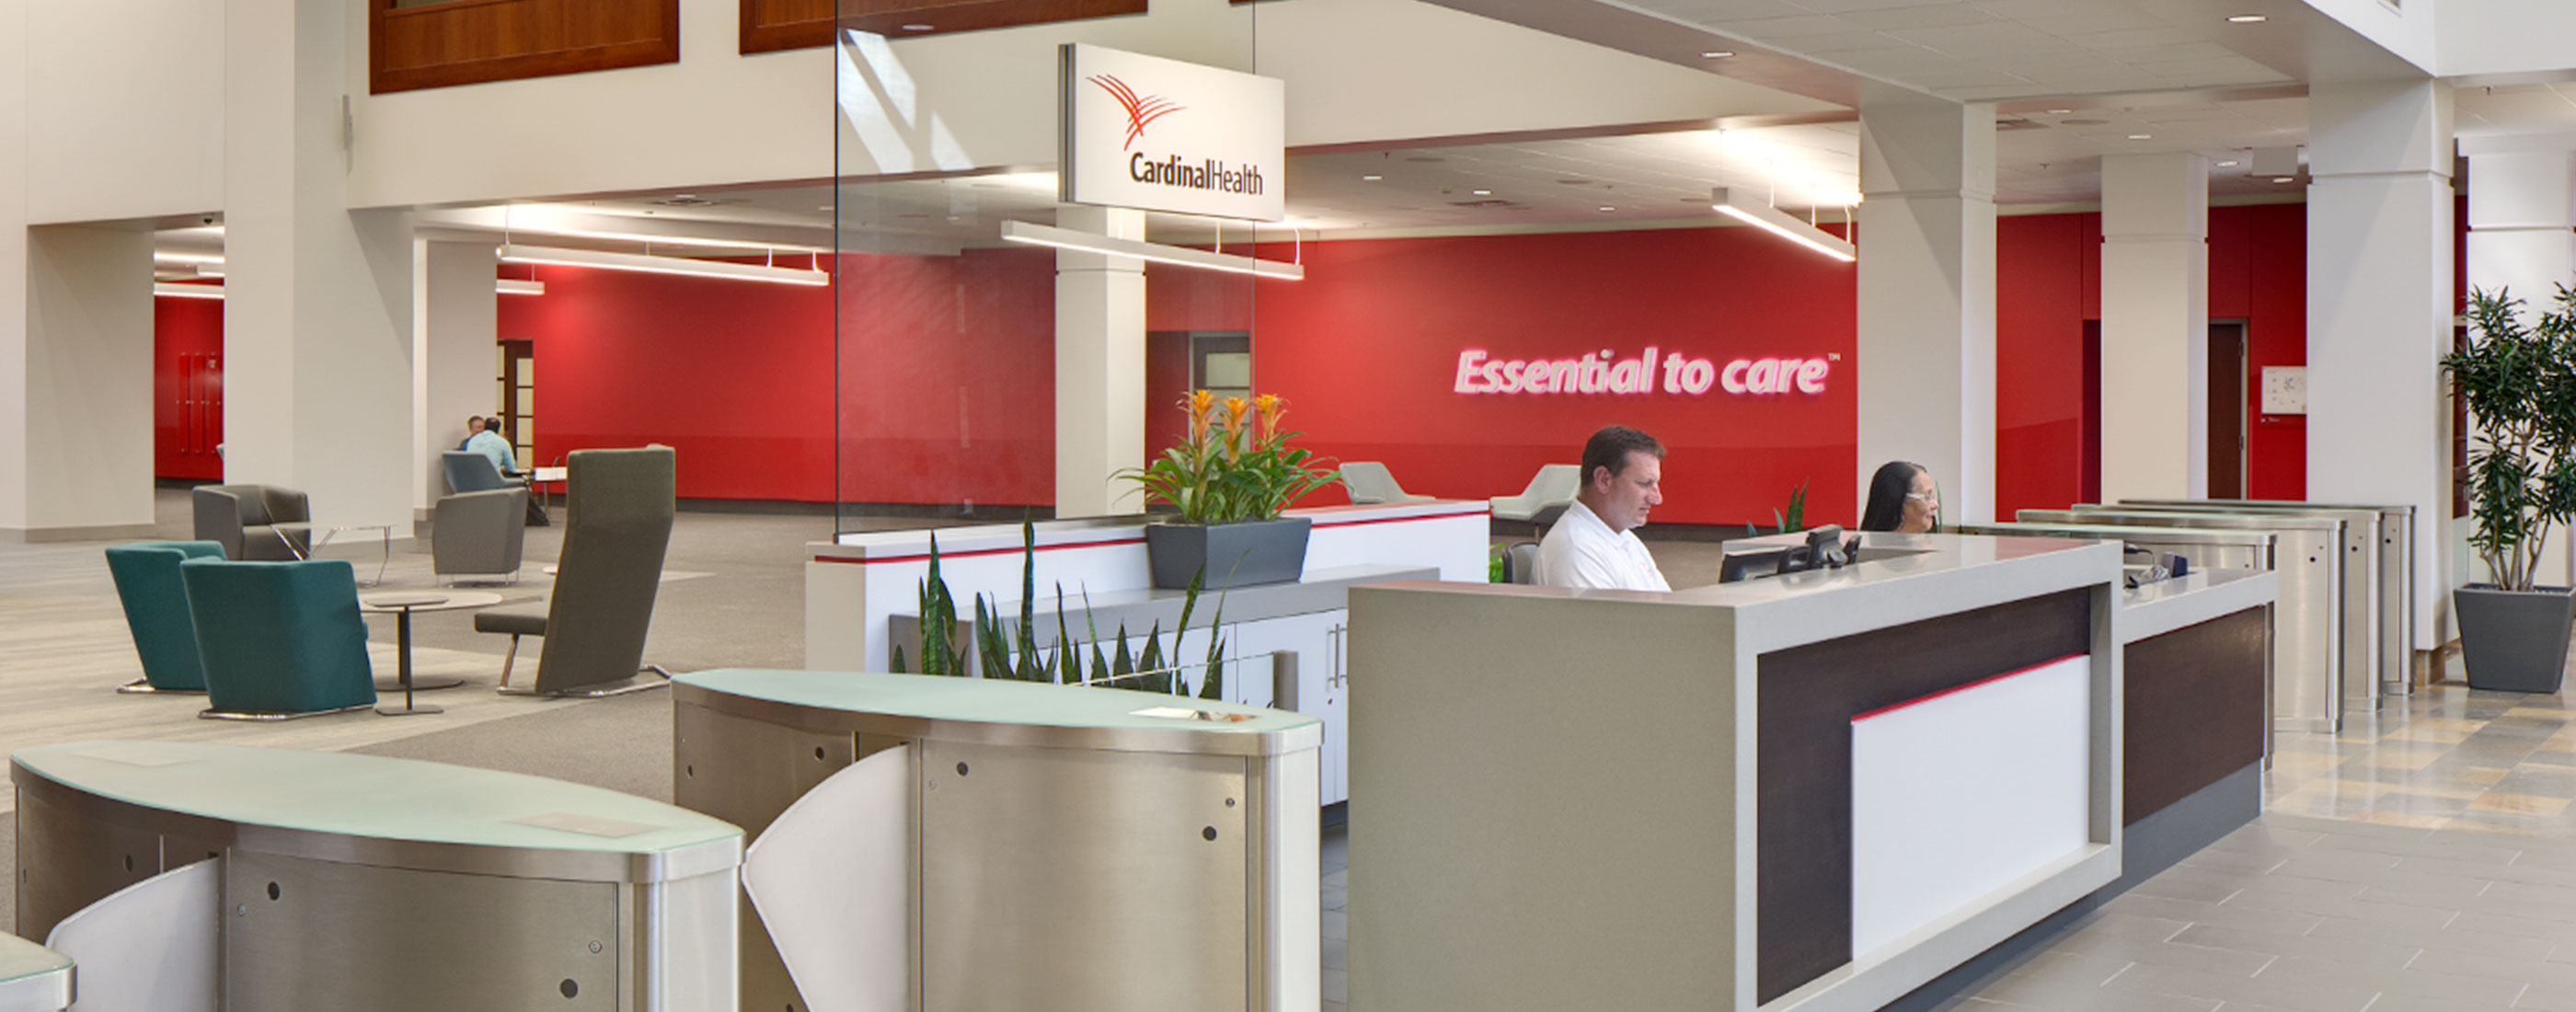 A new Client Experience Center in Cardinal Health's headquarters welcomes visitors to the newly expanded space, designed by OHM Advisors.